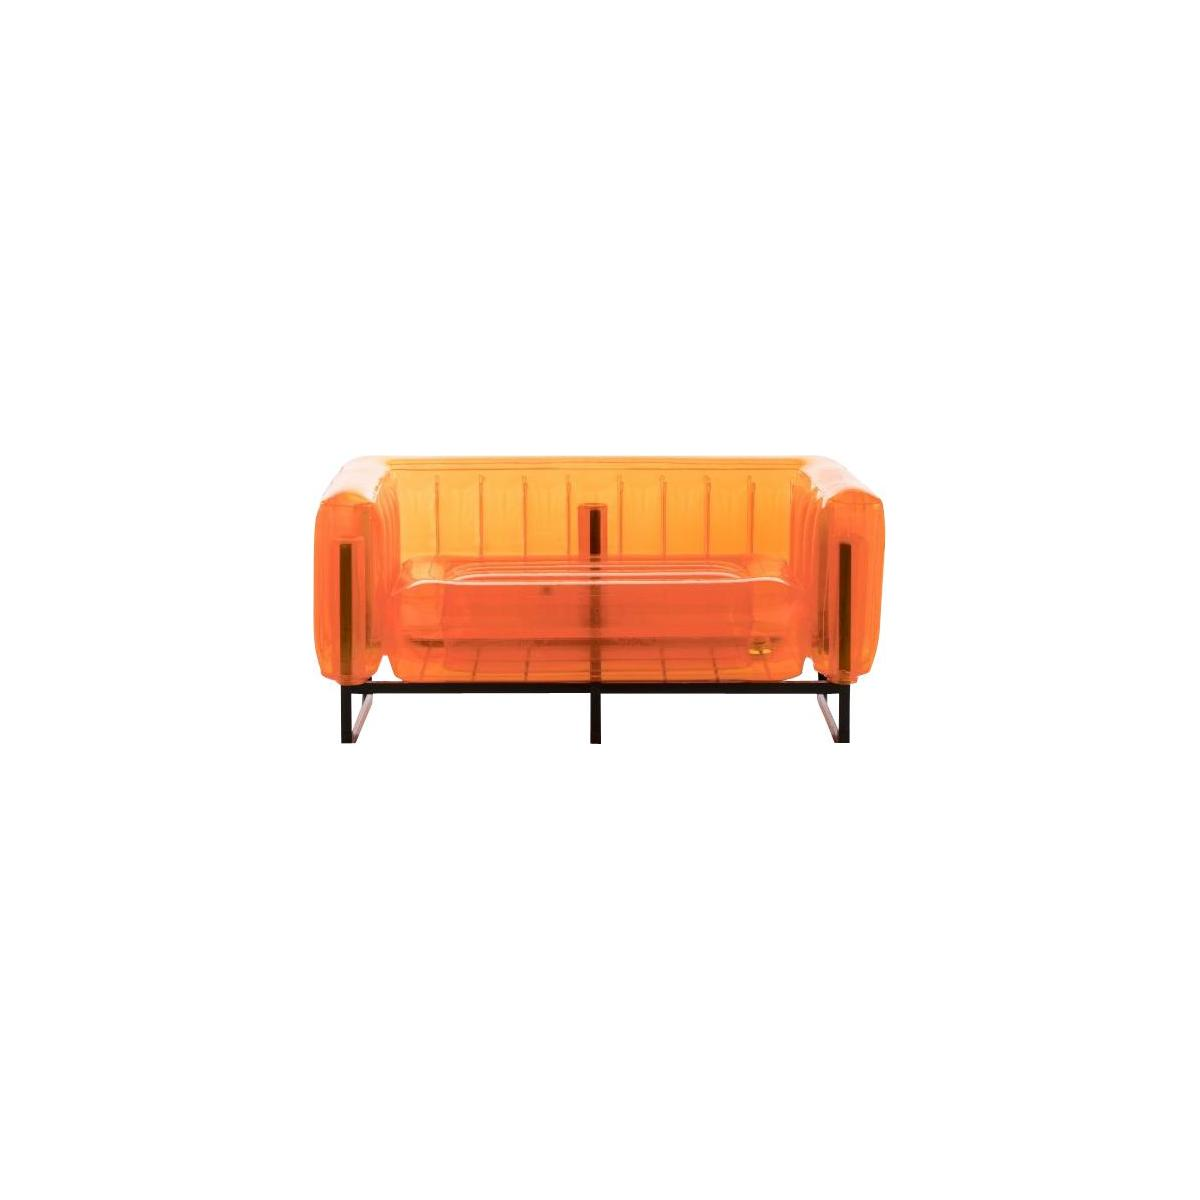 Canapé gonflable 2 places en PVC - Orange n°2